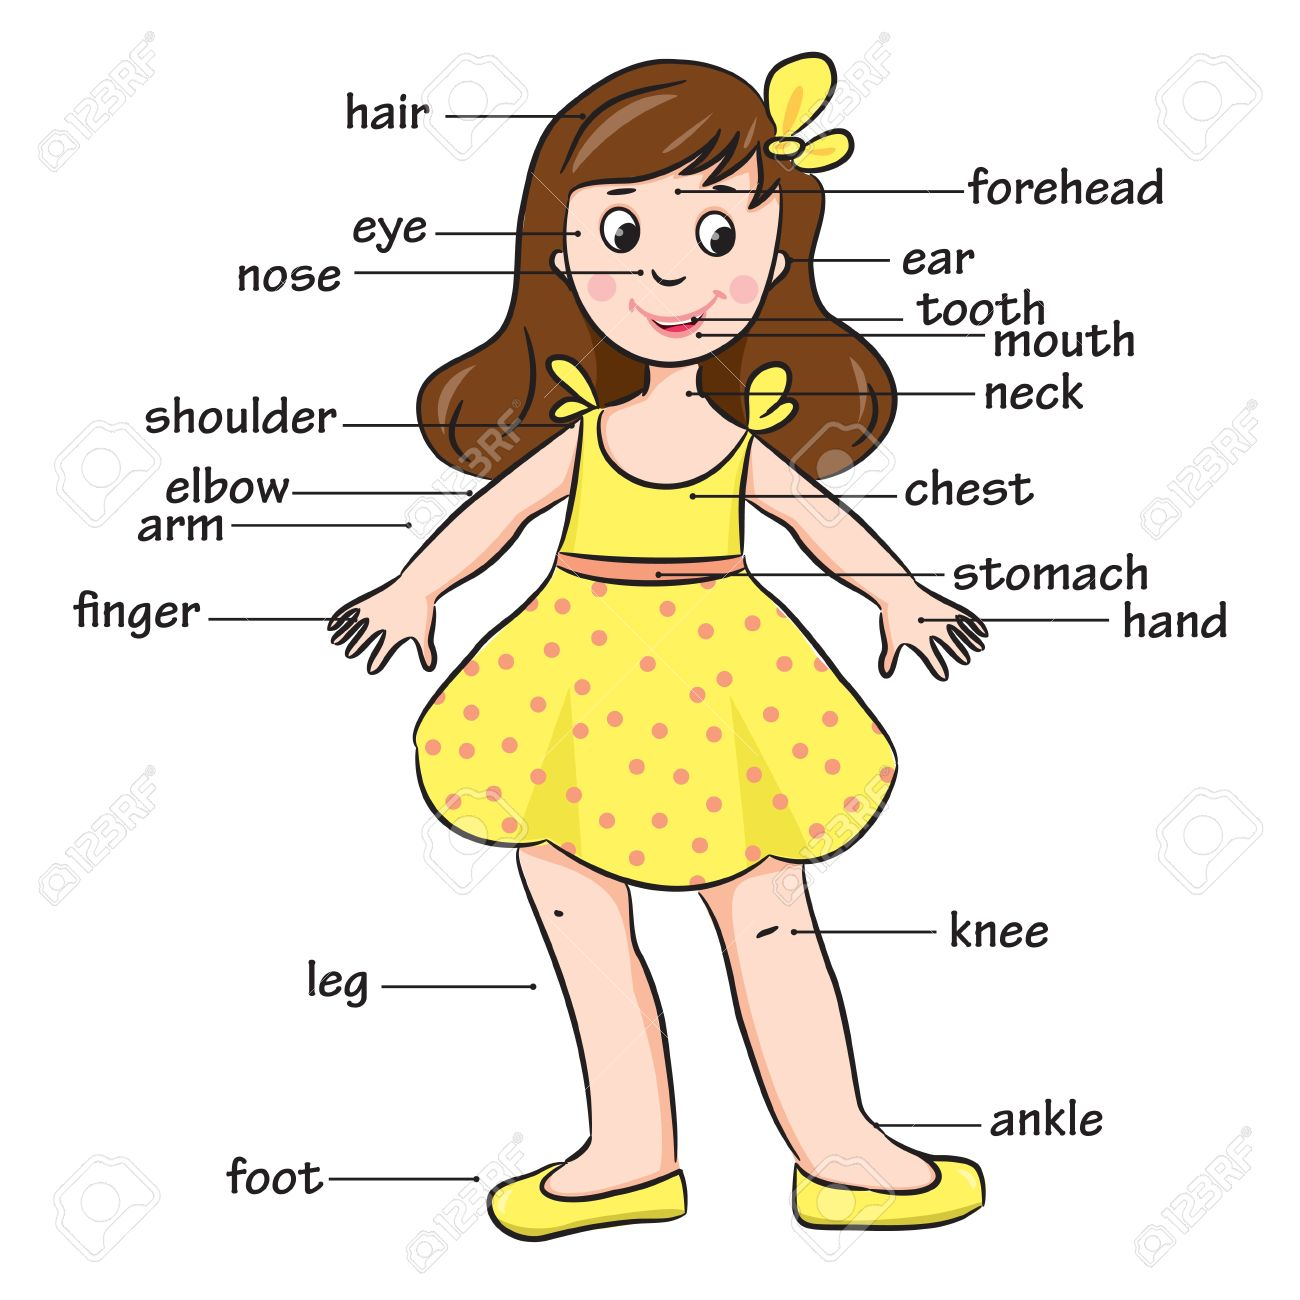 Body Parts Clipart For Kids - More information